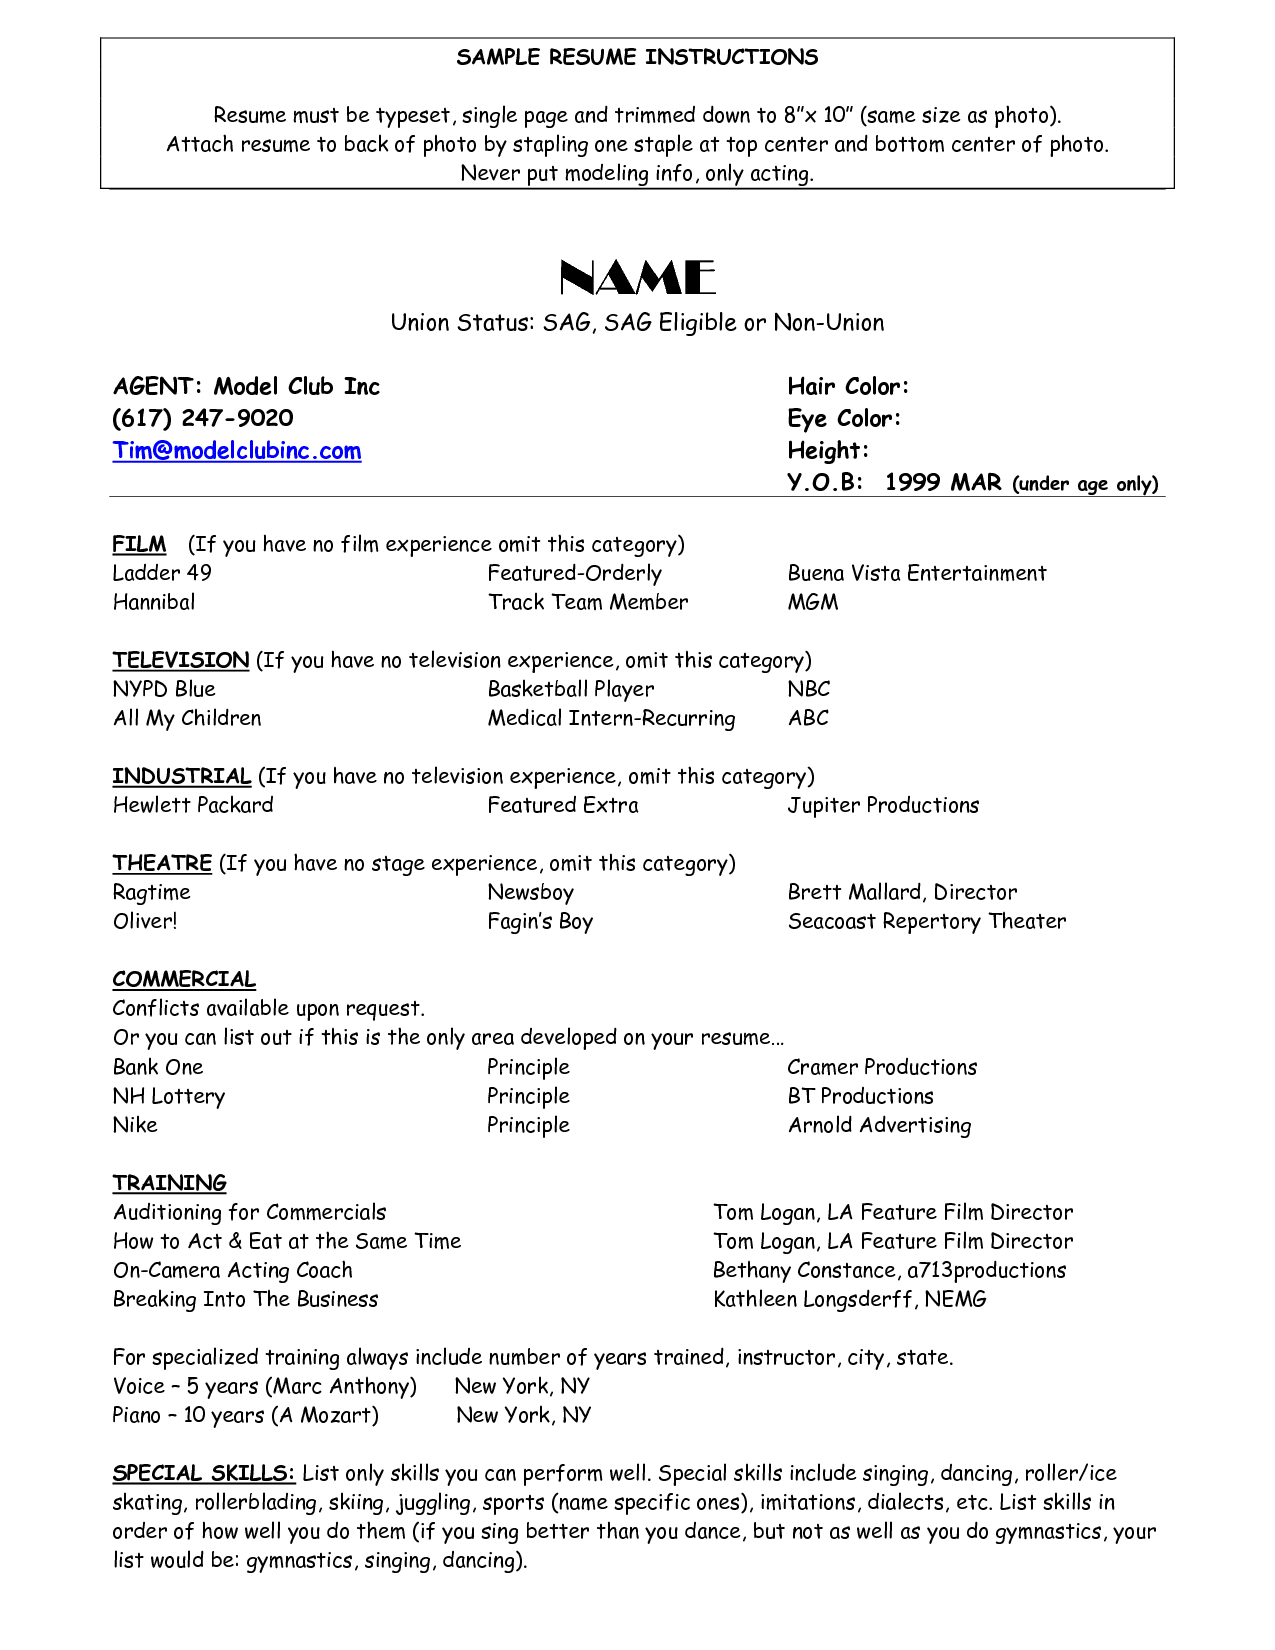 resume for child actor | scope of work template | Film/Acting ...